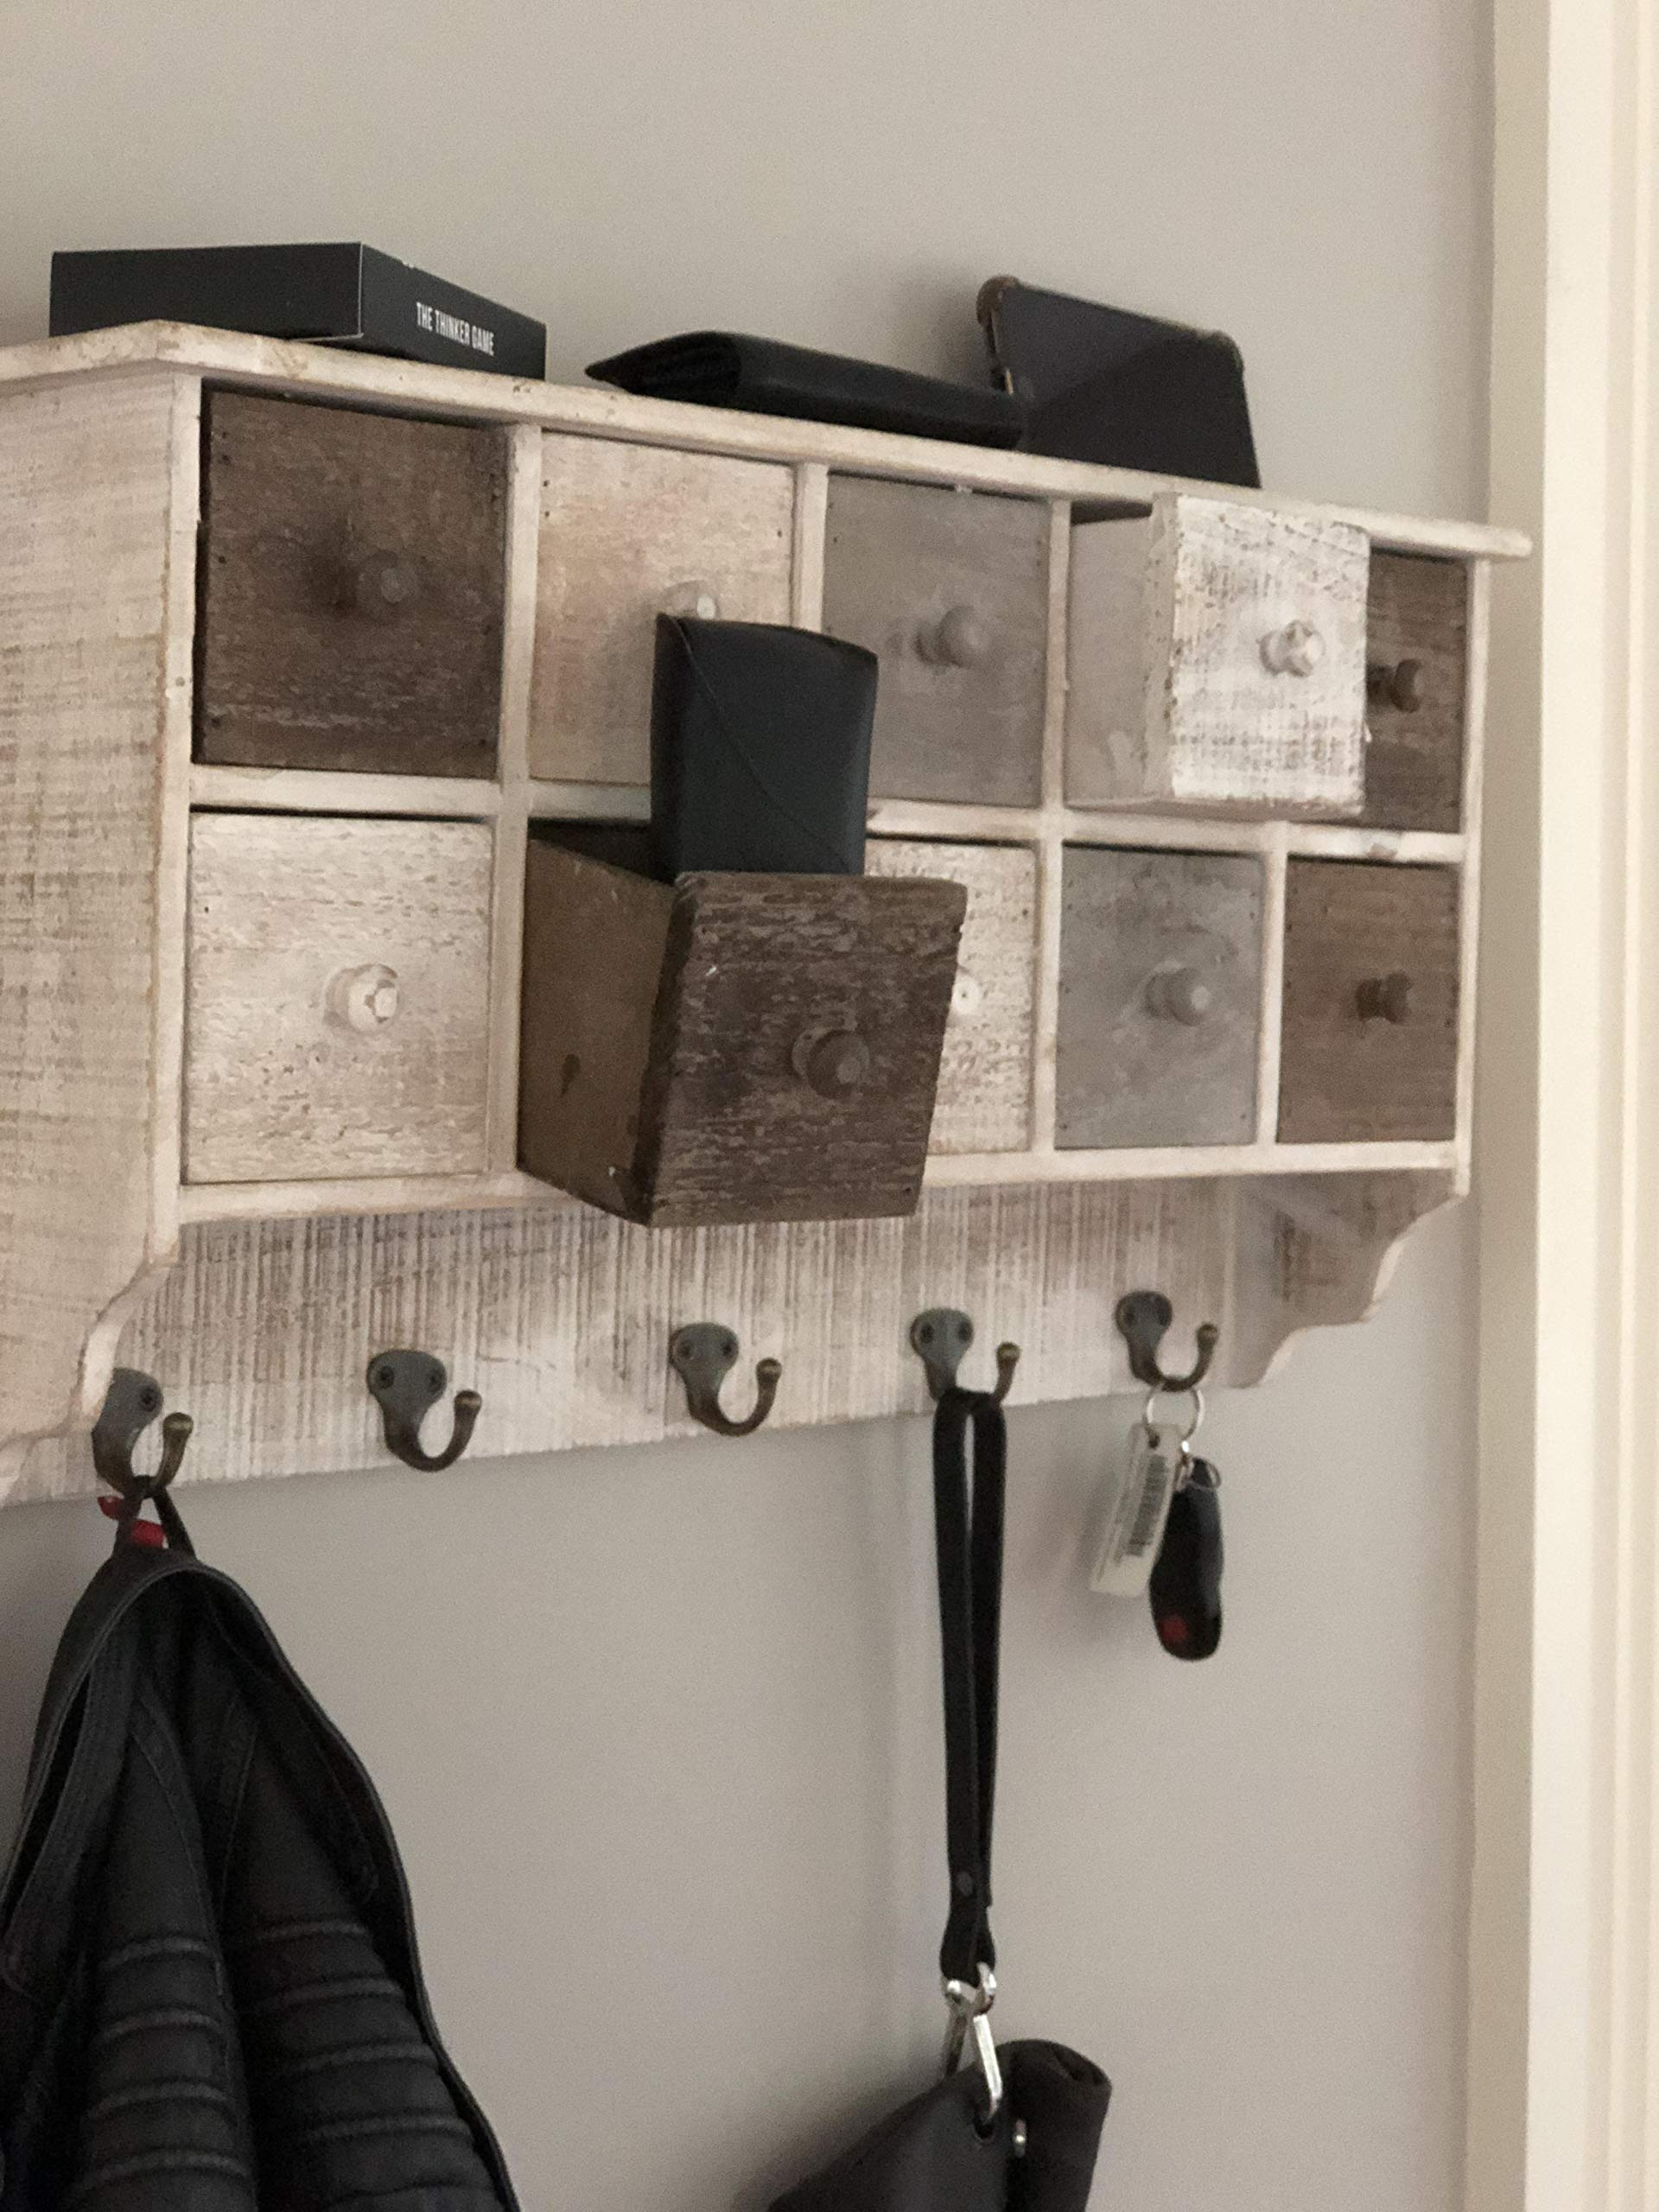 """Avignon Home Country Rustic White Brown Wood Wall Organizer Shelf Rack/Wall Cabinet w/Drawers & Metal Hooks Key Hook - DIMENSIONS: 22.5"""" wide, 13"""" high, 5"""" deep. 10 sliding cube drawers each measuring 3.5""""x3.5"""" 6 key hooks which can also be used to hang coats or jackets or hats as an entryway organizer - wall-shelves, living-room-furniture, living-room - 81ej5vV8T7L -"""